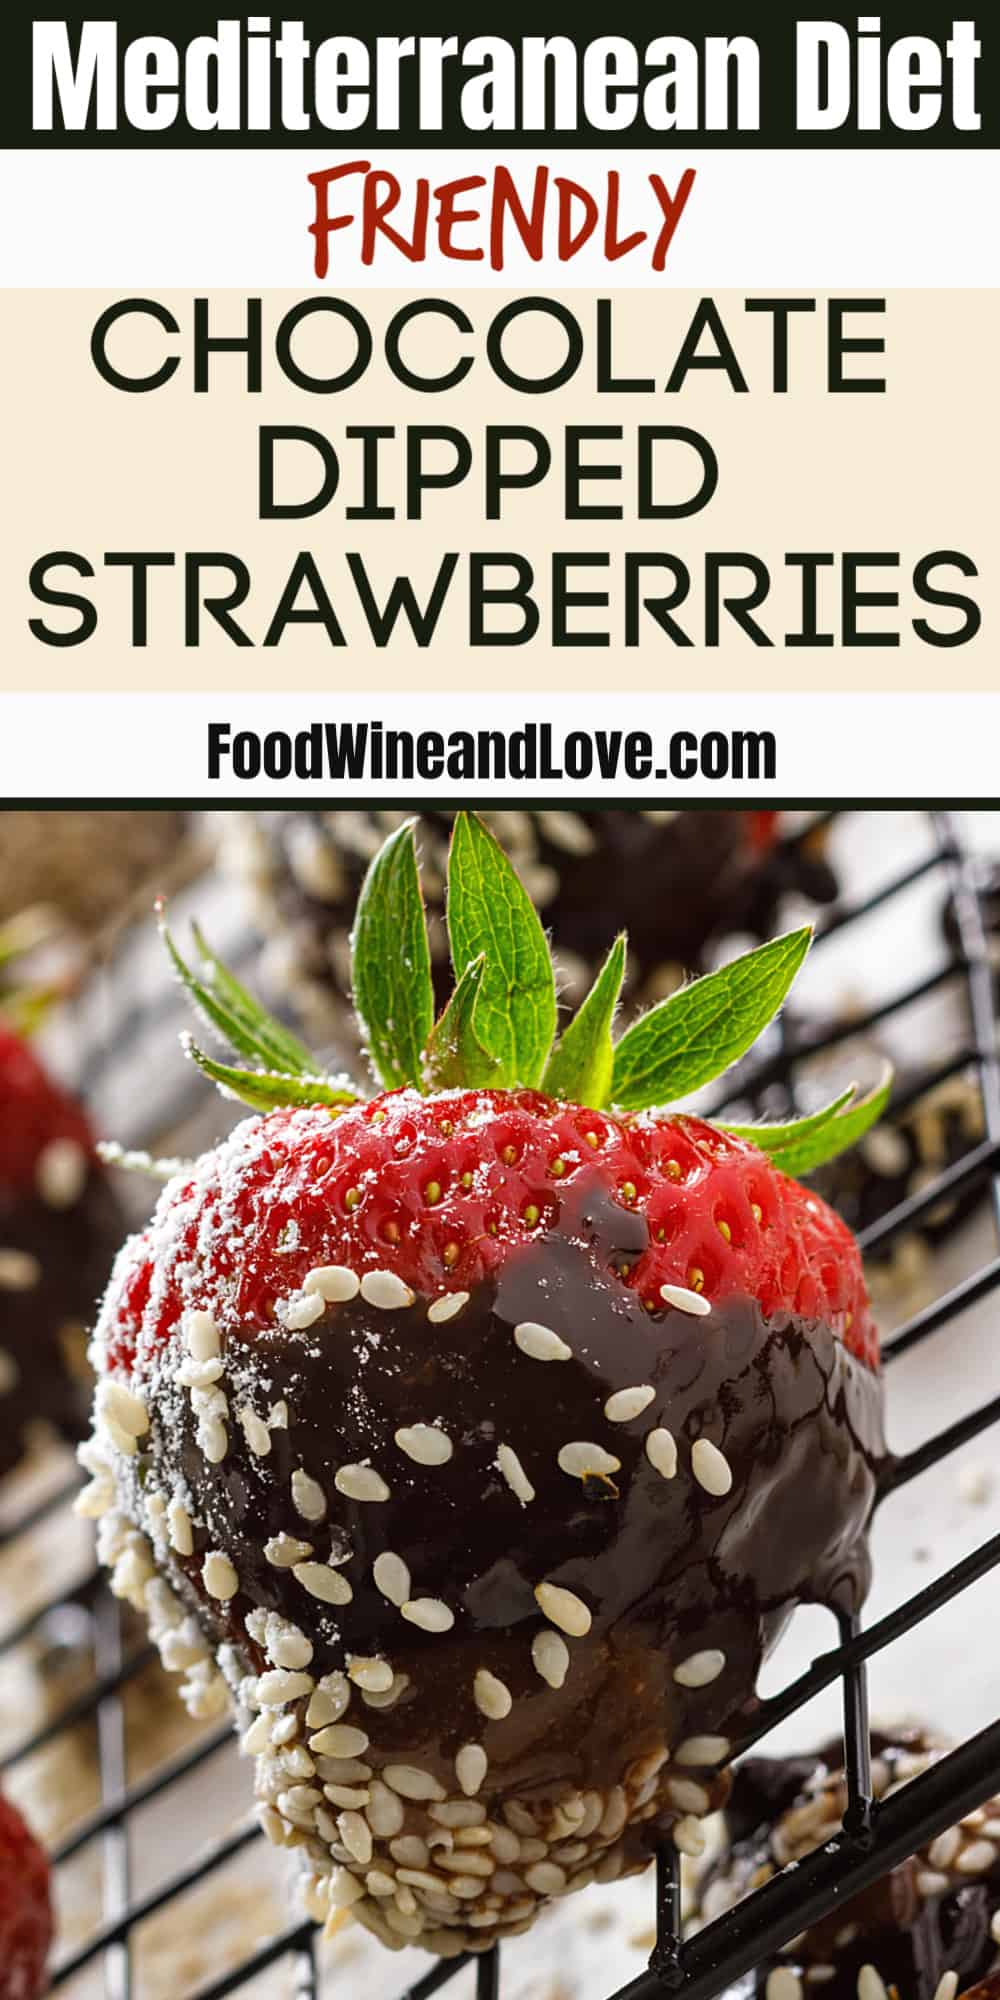 Mediterranean Diet Friendly Chocolate Dipped Strawberries